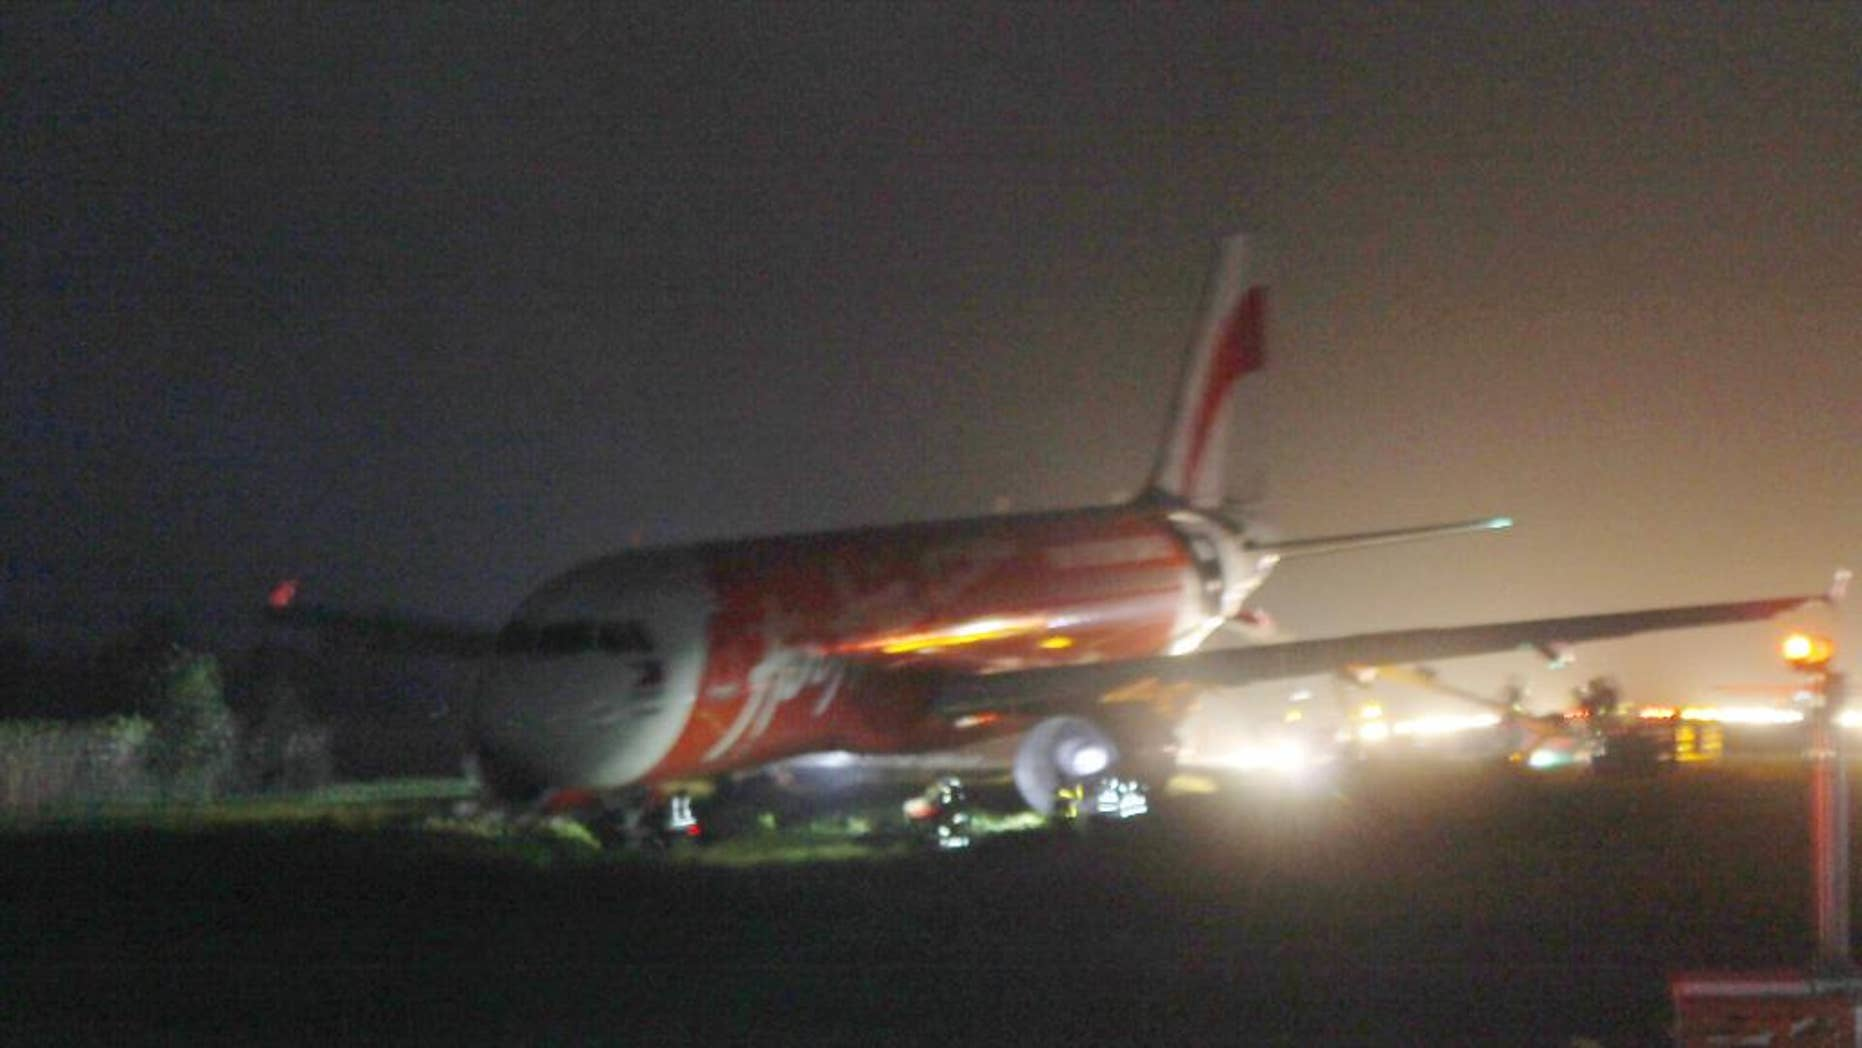 An AirAsia passenger plane sits on the grassy portion of the runway after overshooting upon landing in windy weather at Kalibo airport in Kalibo township, Aklan province in central Philippines Tuesday, Dec. 30, 2014. Giovanni Hontomin, who is in charge of AirAsia Zest's operations, told The Associated Press crewmembers activated an emergency slide to help passengers disembark safely from the Airbus aircraft. There were no immediate reports of injuries to the passengers and crew and the plane remained stuck on a grassy area near the runway's end. (AP Photo/Jun Aguirre)